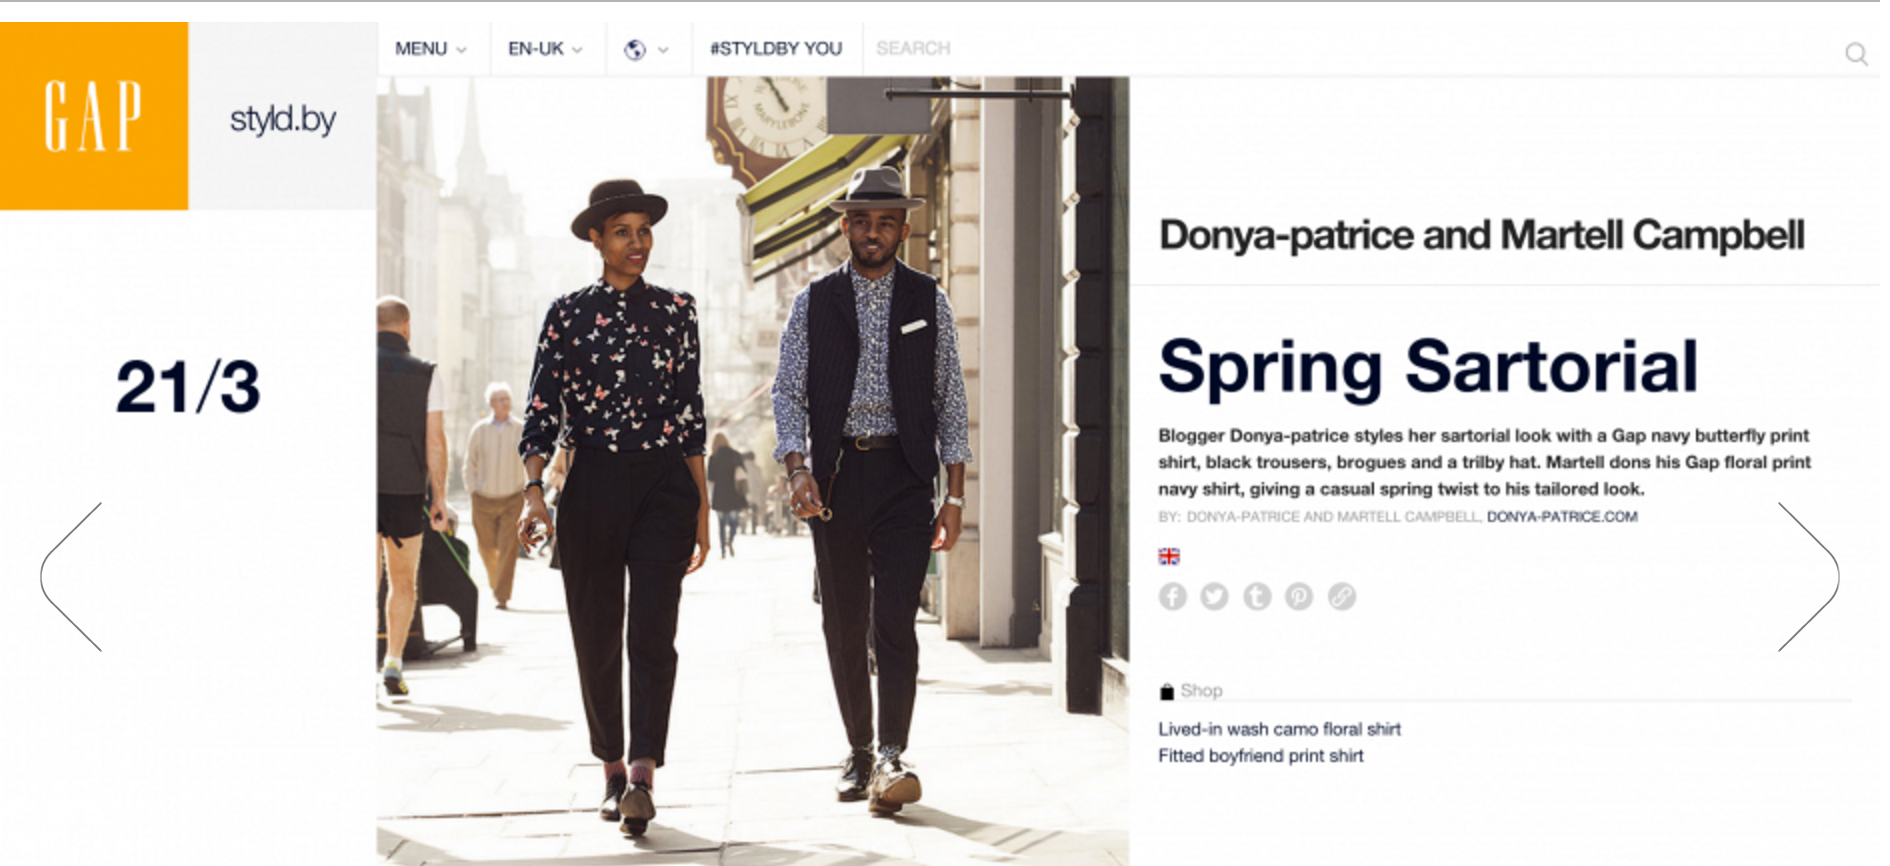 Gap Styld.by Campaign